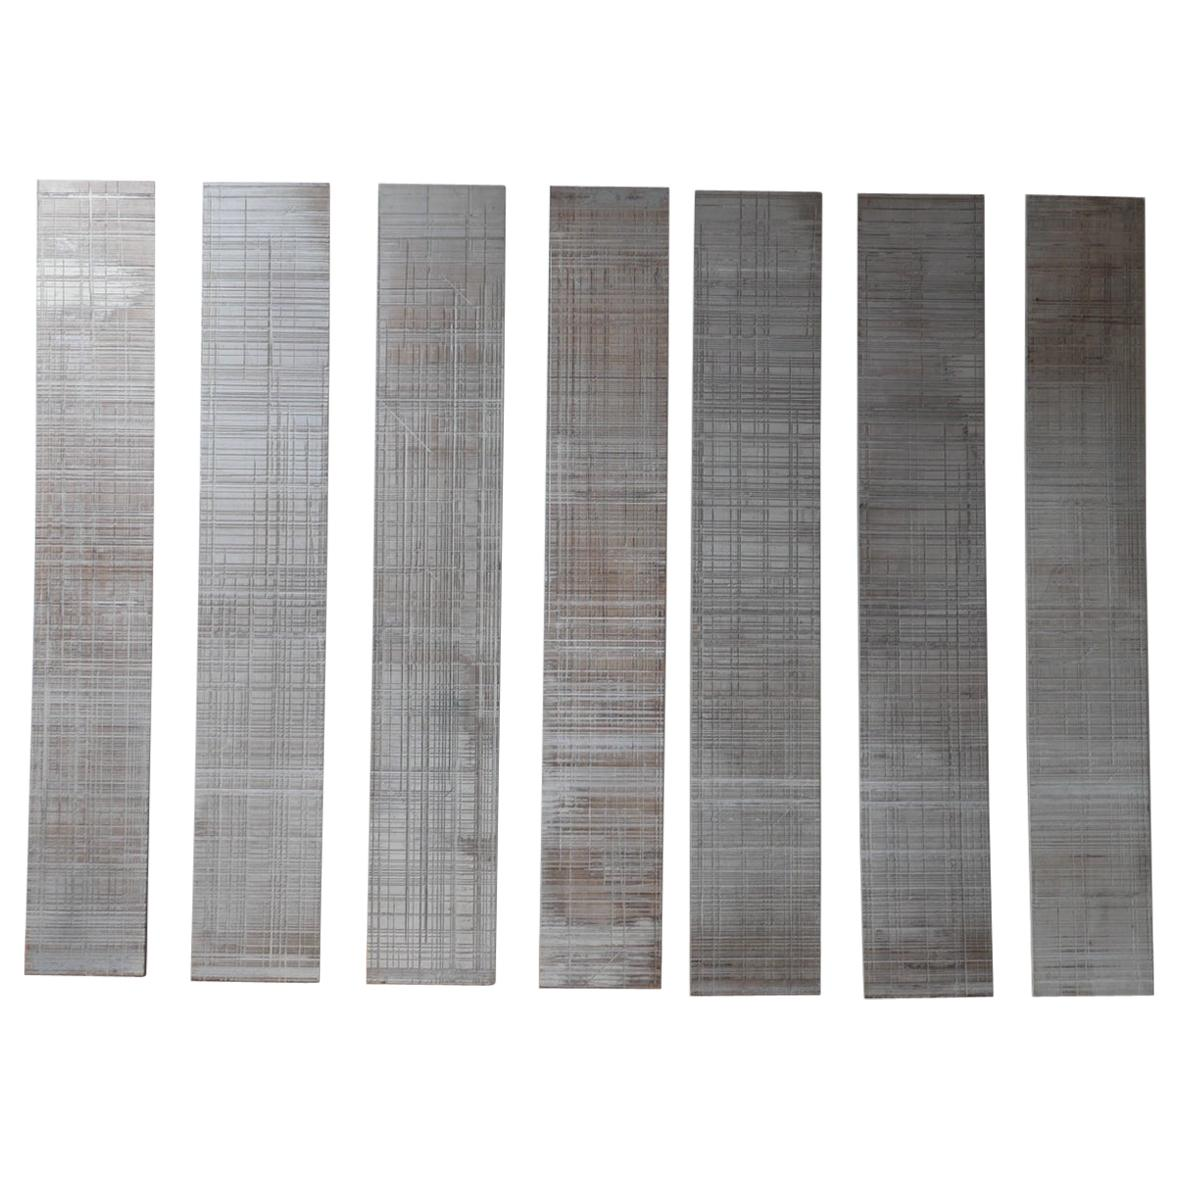 Marble Cutting Boards Decorative Art Wall Panels